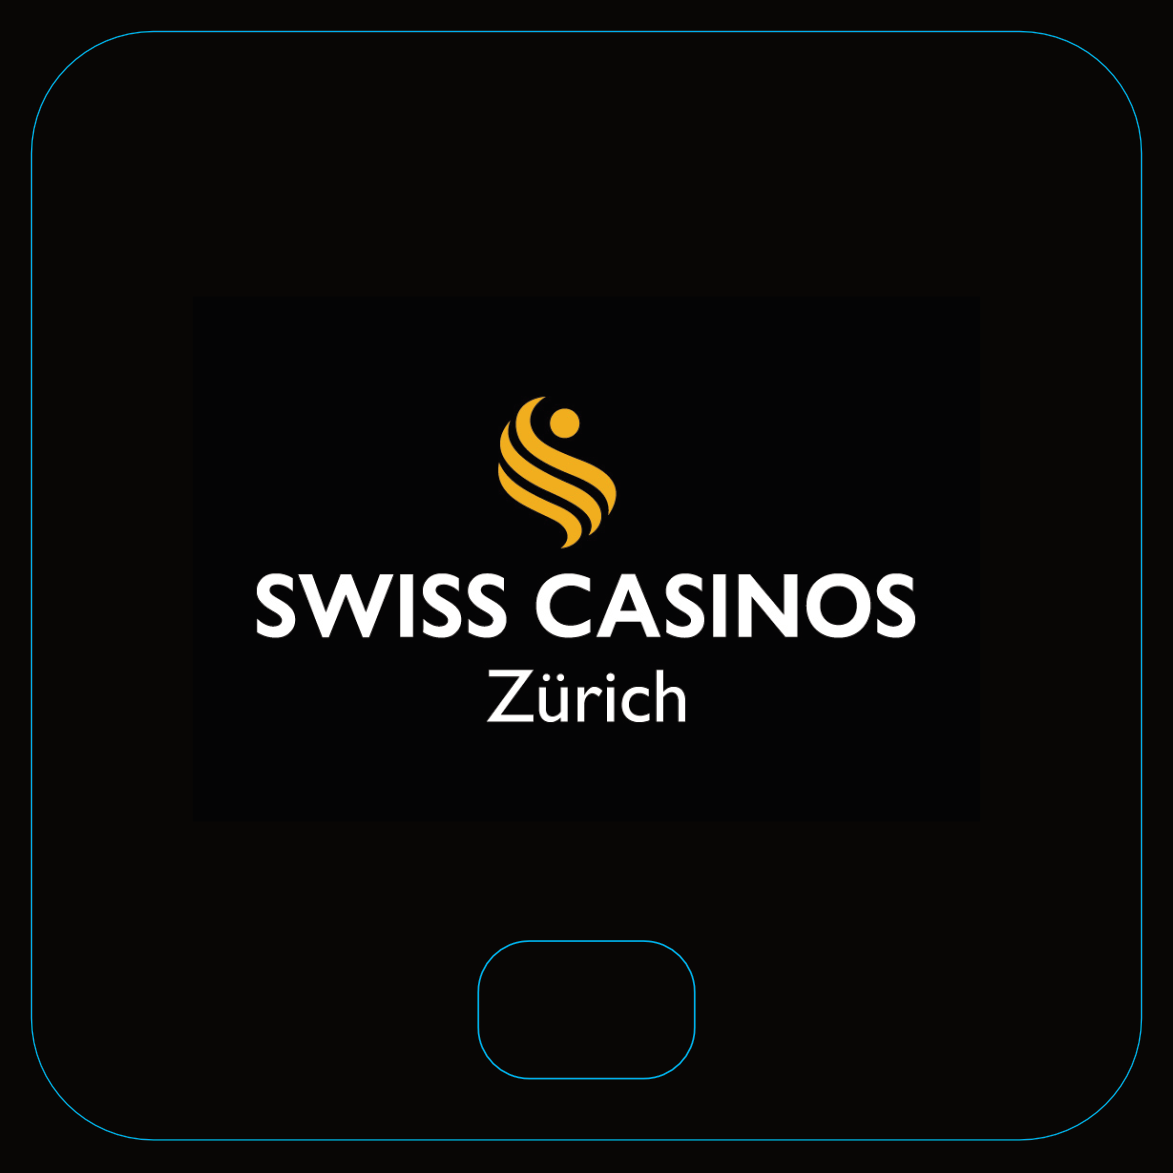 Swiss_Casino_Zürich_70.4